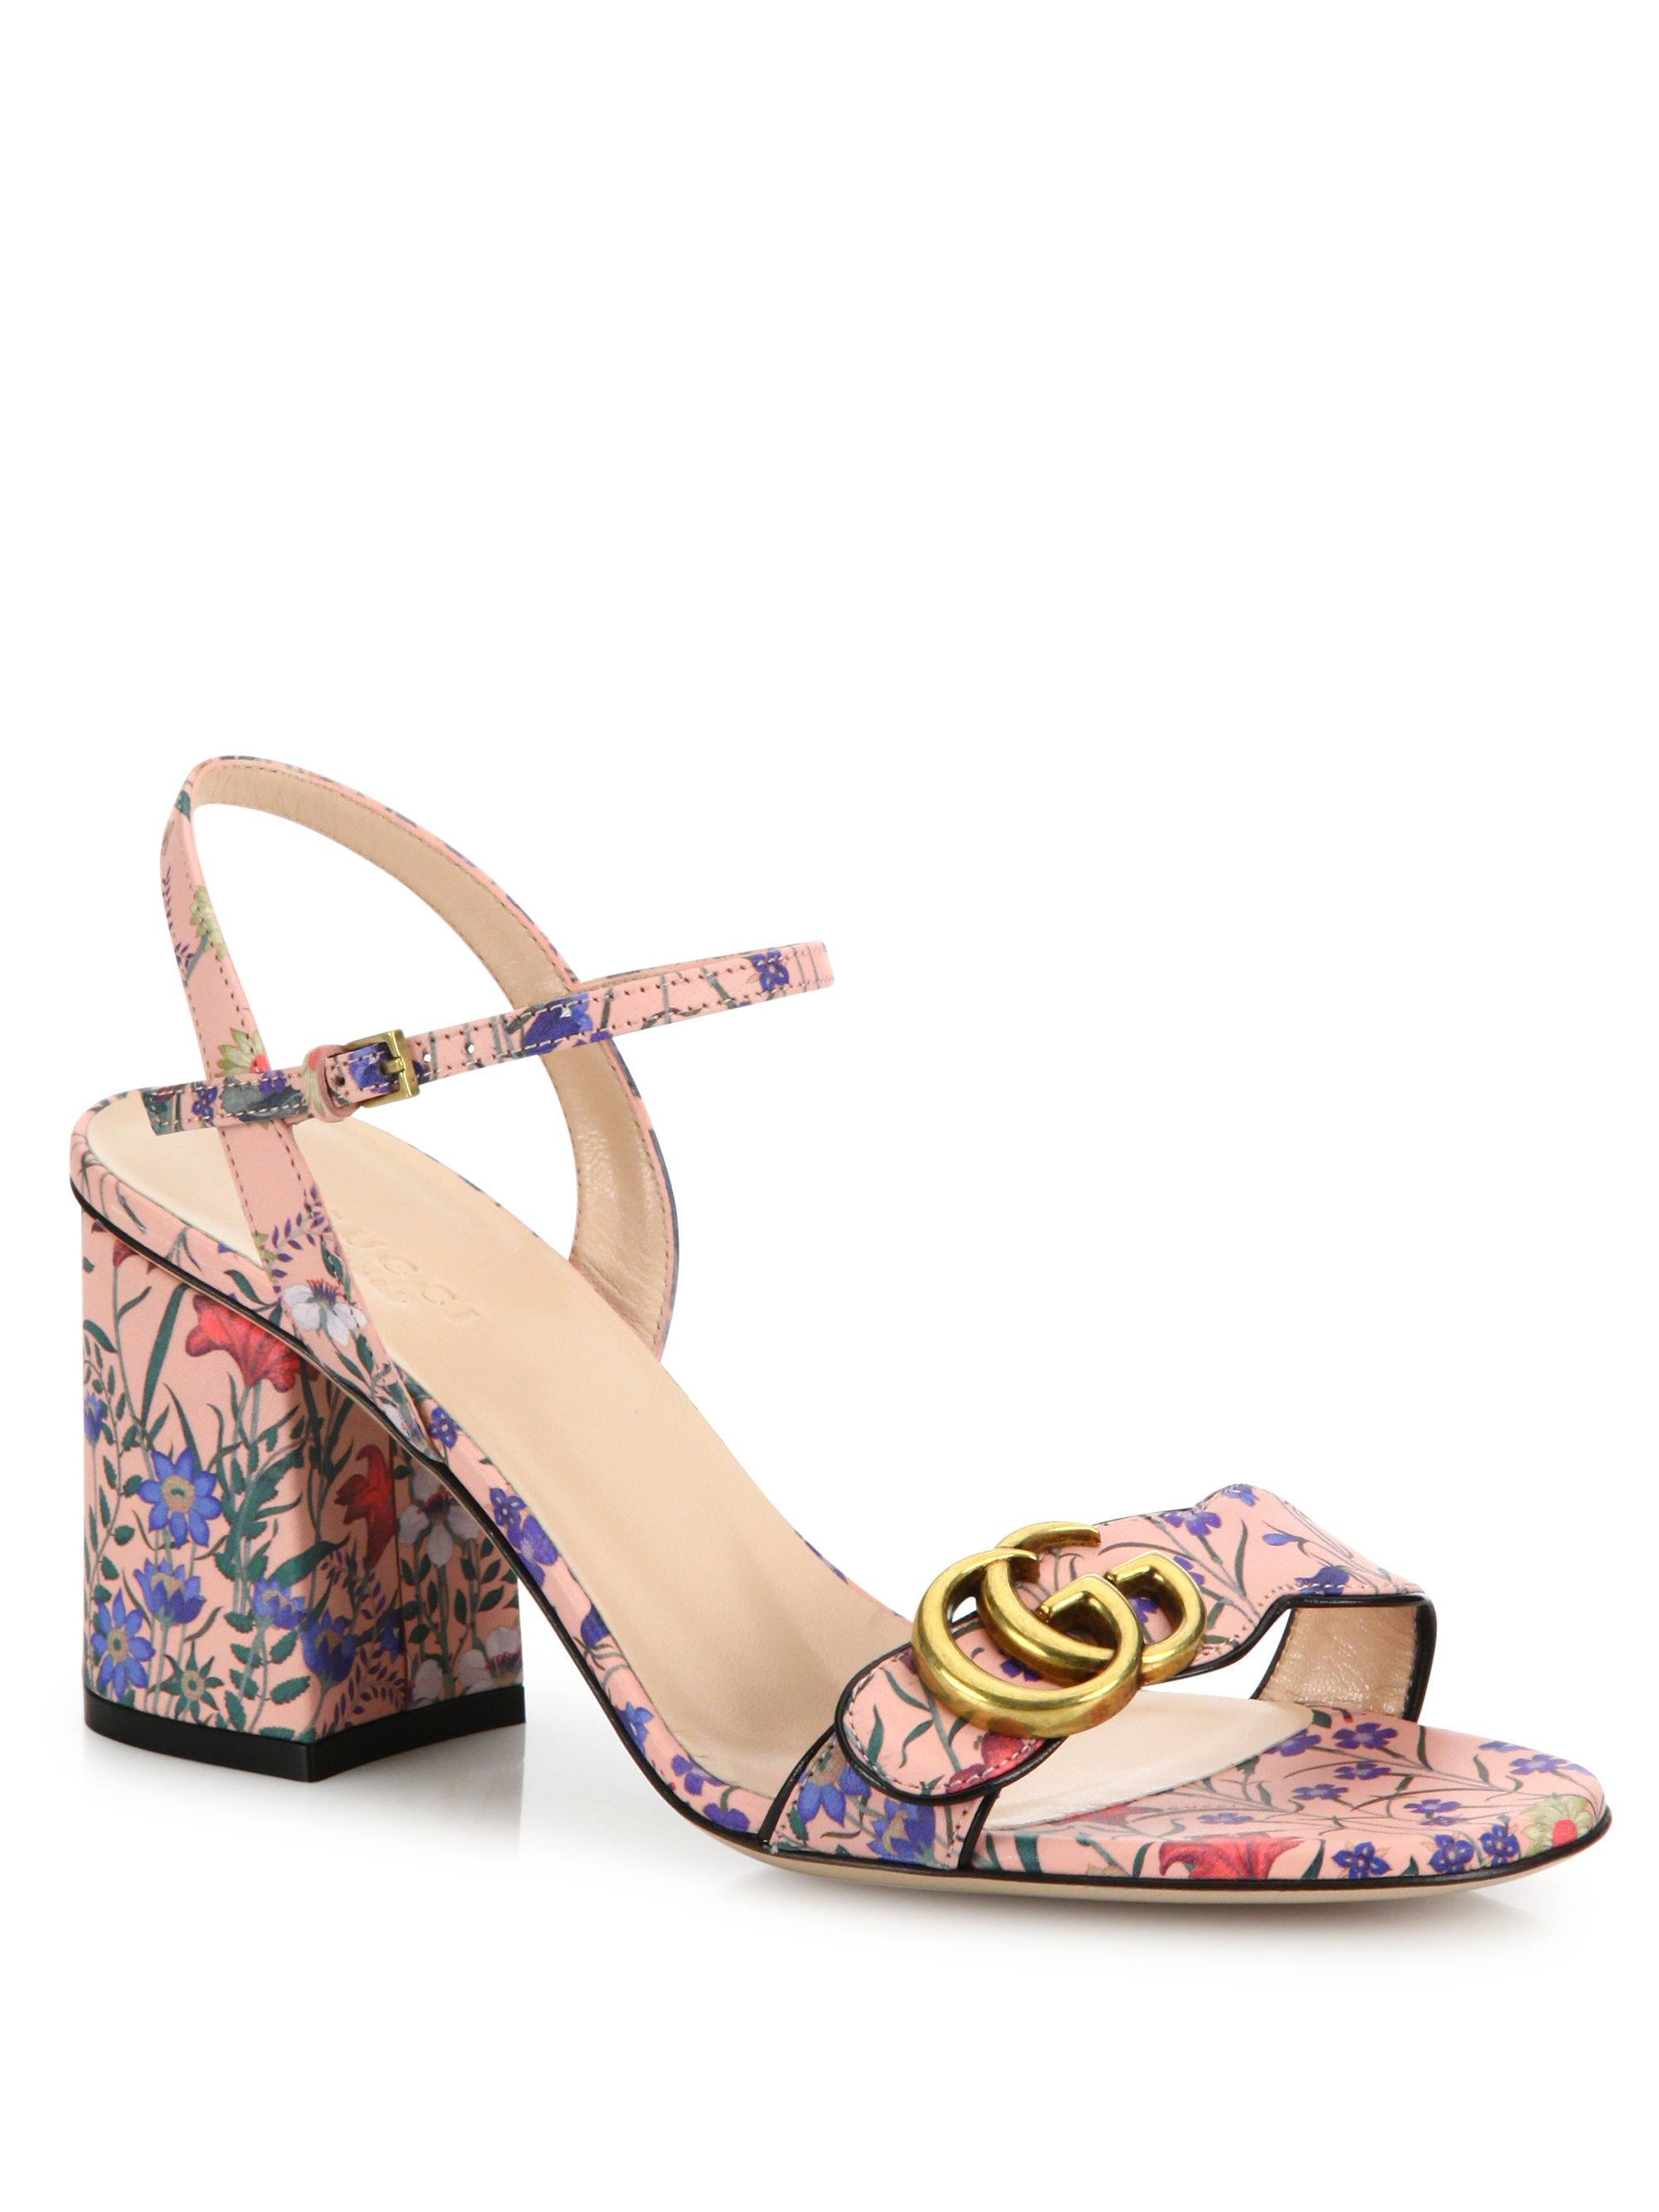 66b08a072b4 Lyst - Gucci Marmont Floral-print Leather Block-heel Sandals in Pink